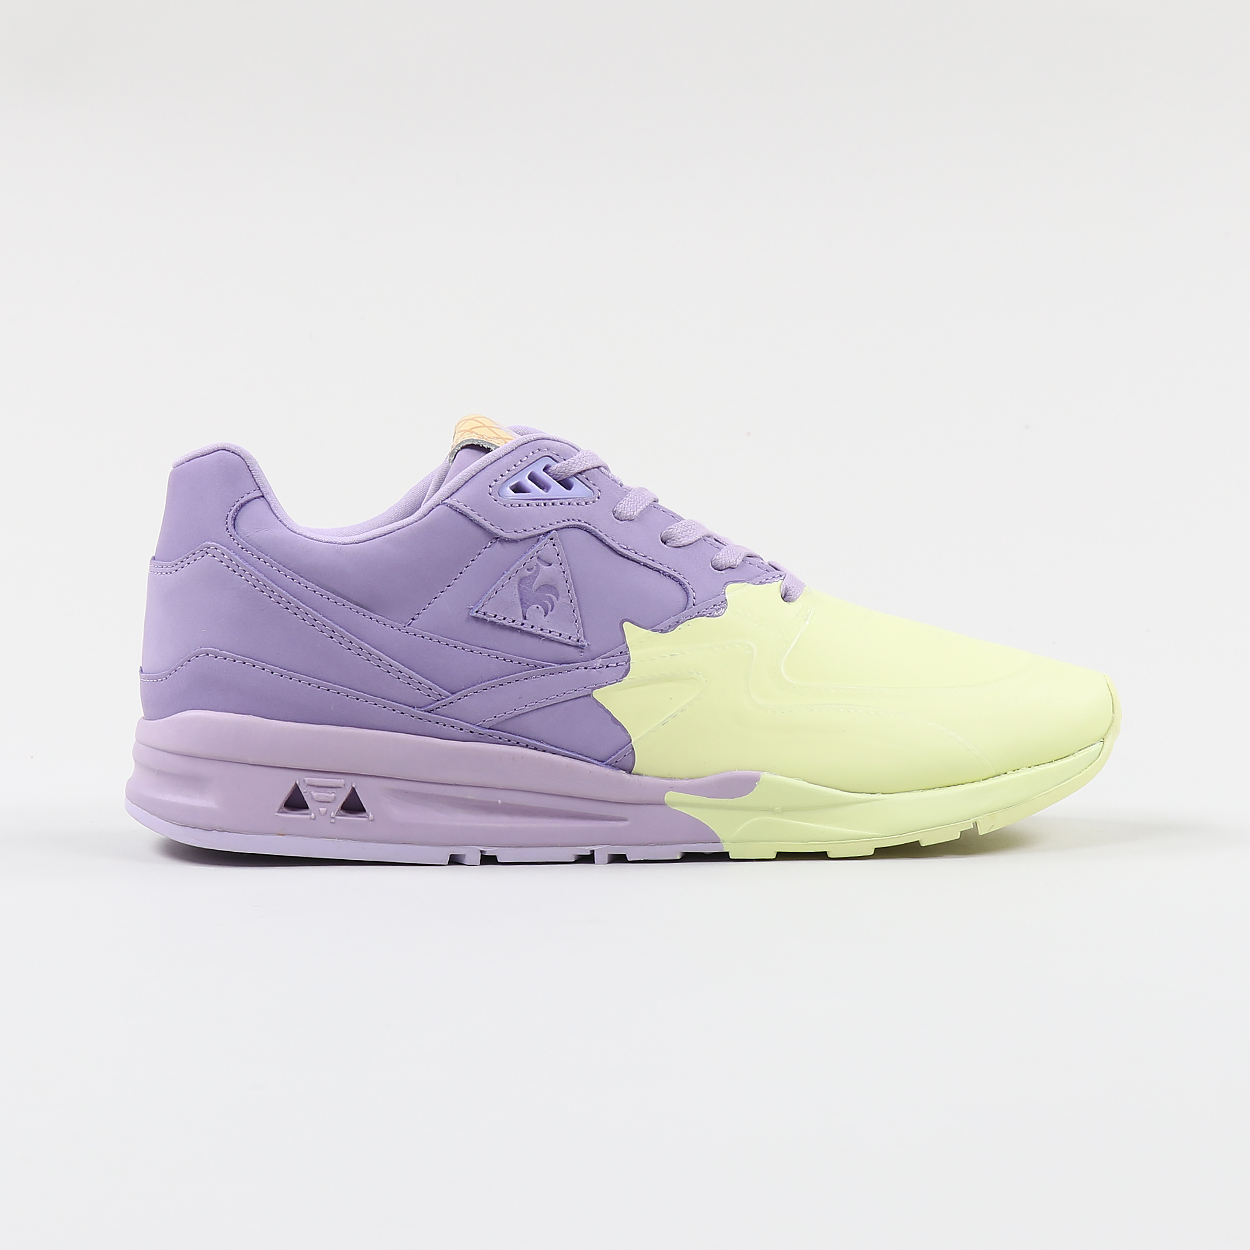 a393edc46ece Le Coq Sportif LCS R800 S Nubuck Shoes Orchid Tint Wax Yellow £124.80